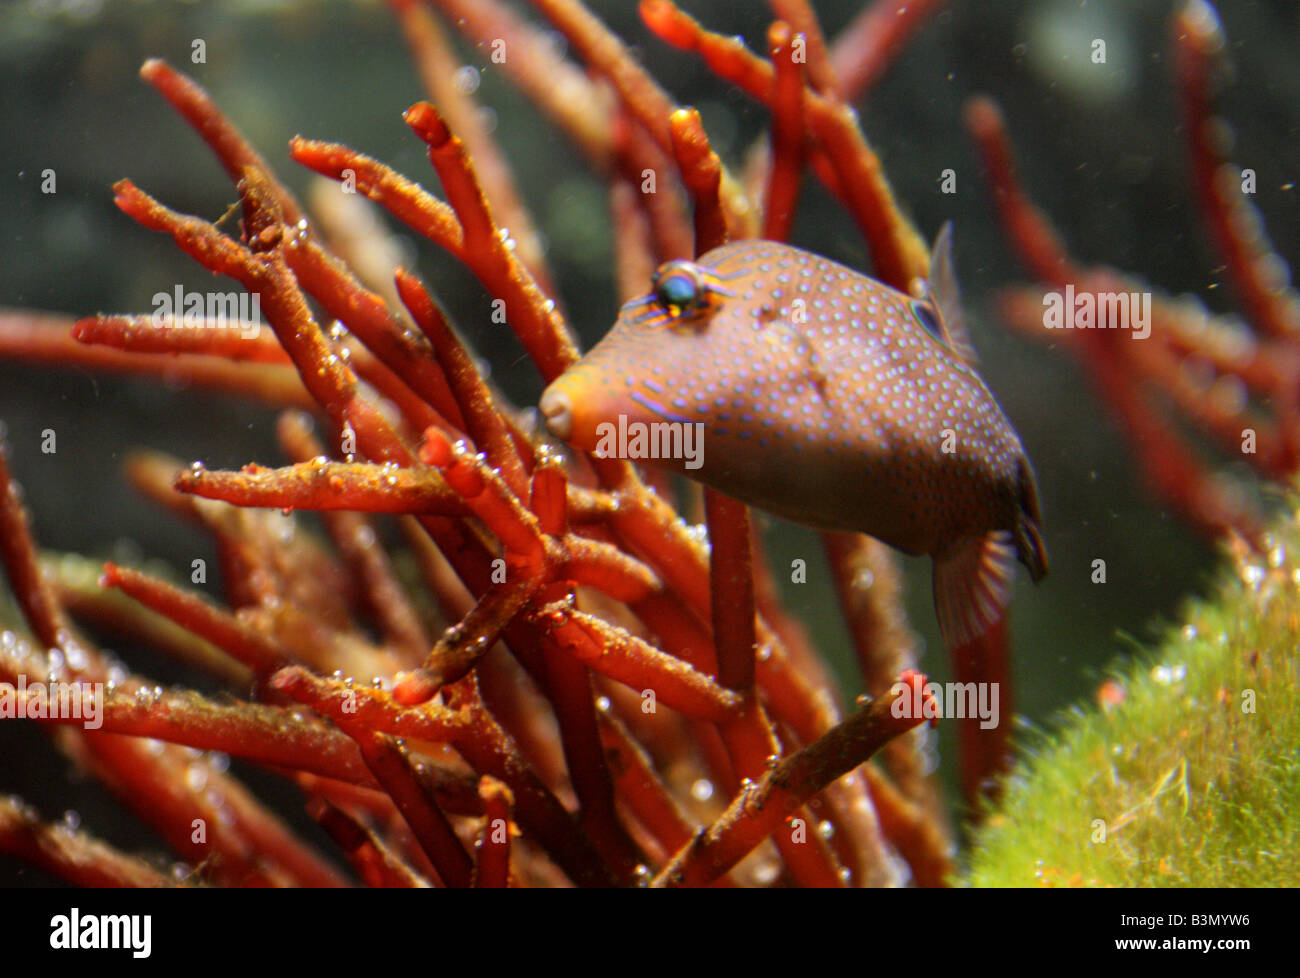 Blue Spotted Puffer Fish Stock Photos & Blue Spotted Puffer Fish ...